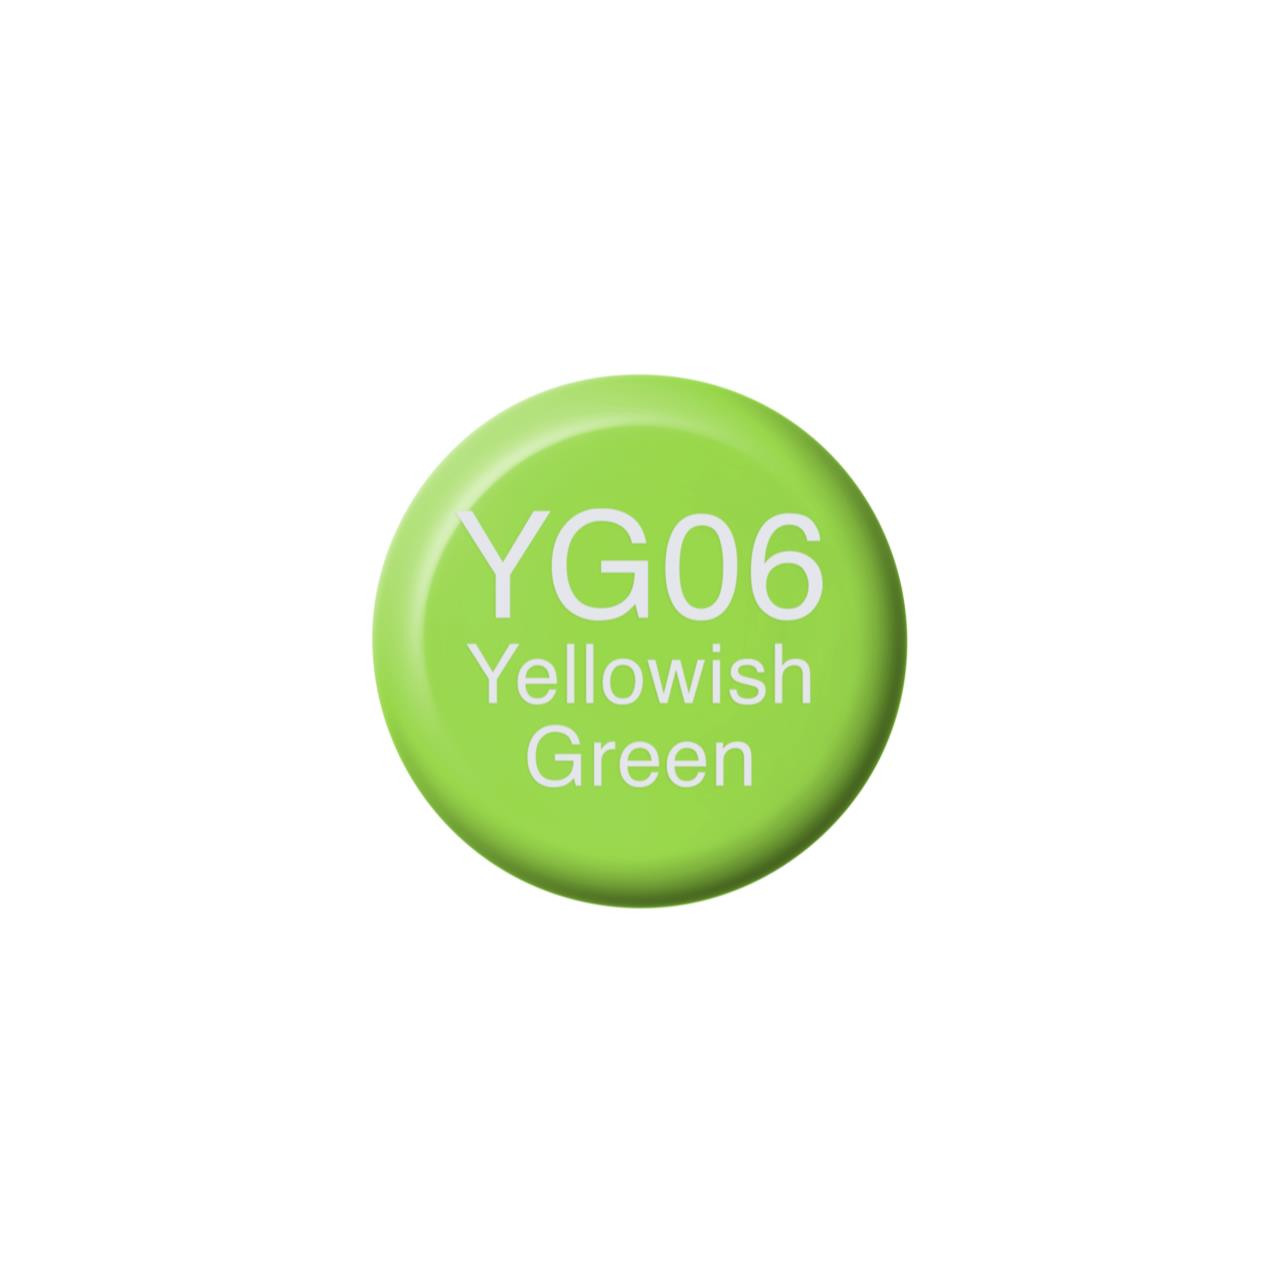 YG06 Yellowish Green, Copic Ink - 4511338058381